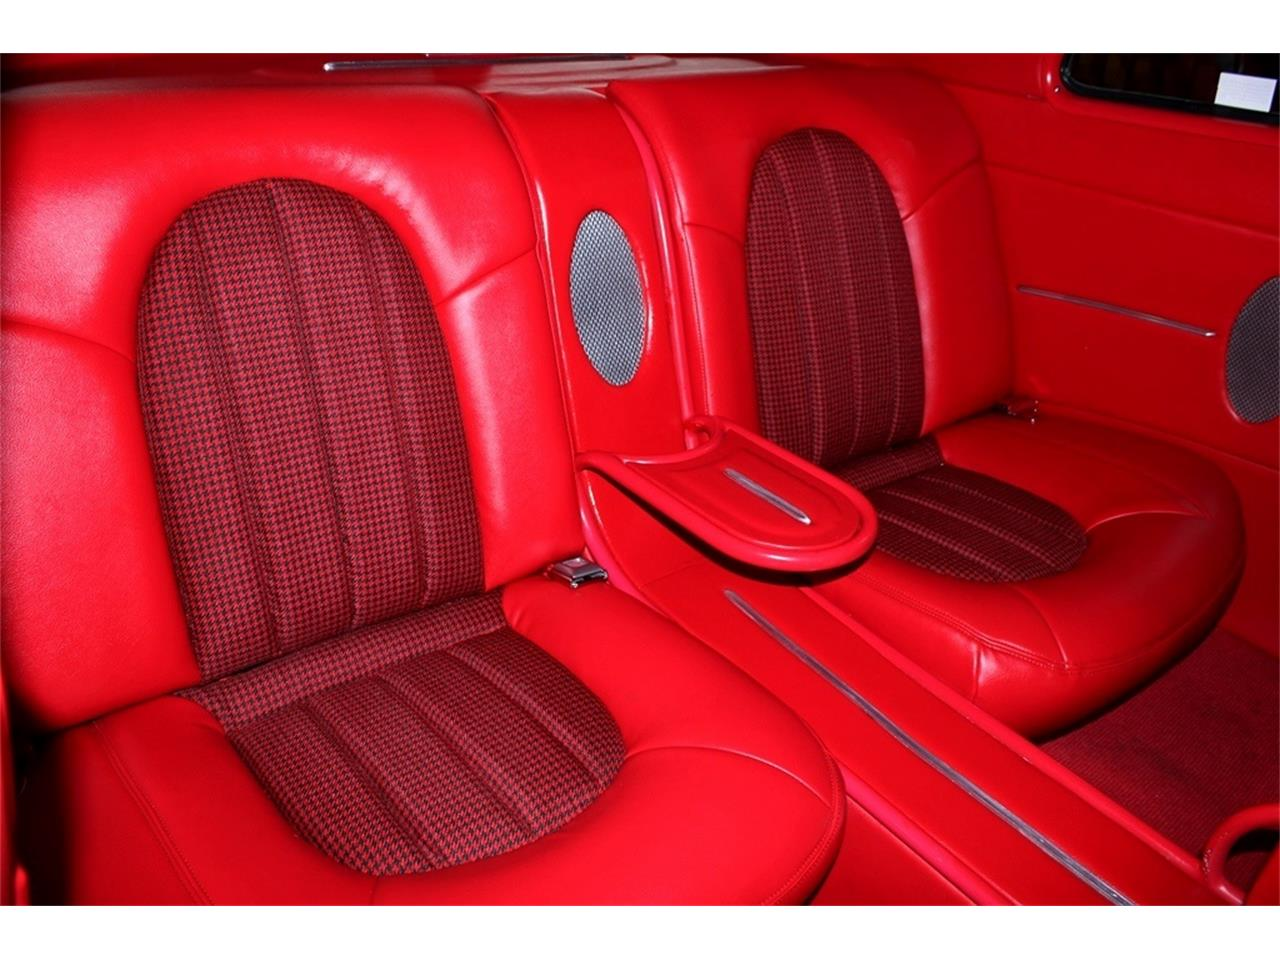 Large Picture of Classic 1950 Chevrolet Styleline Deluxe located in Texas Offered by A&E Classic Cars - QQK1